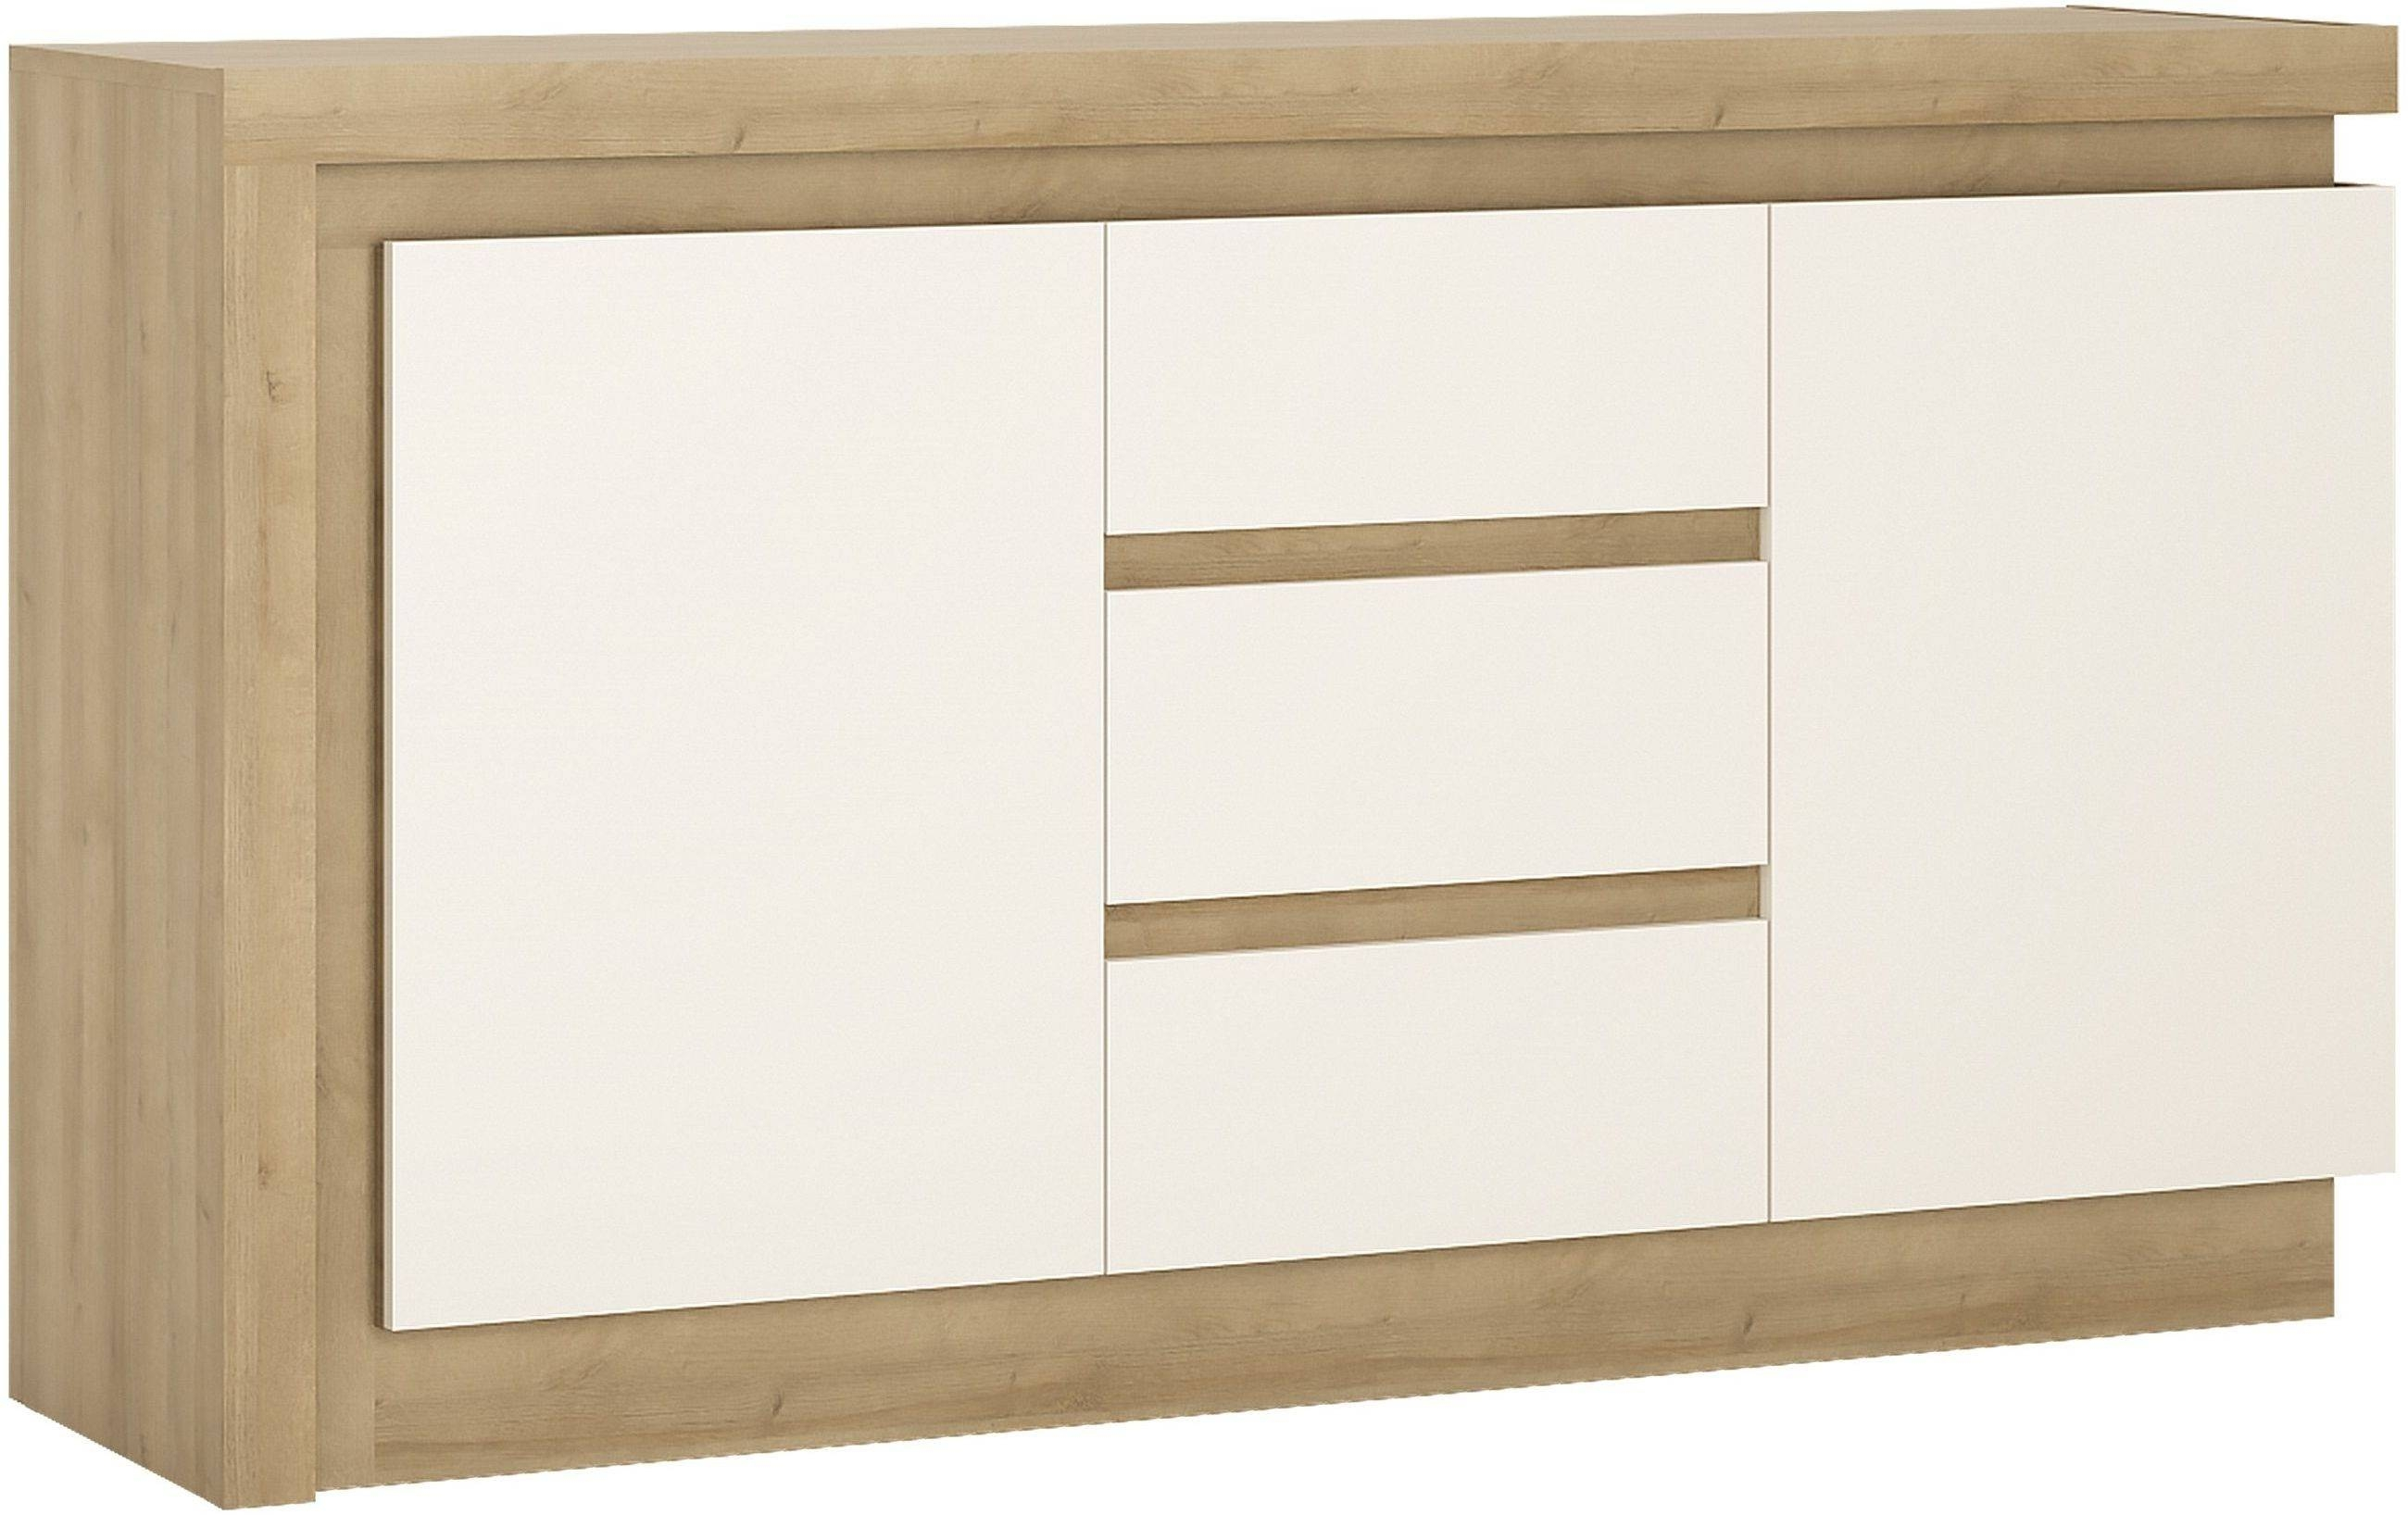 Buy Lyon Riviera Oak And White High Gloss Sideboard - 2 Door 3 pertaining to High Gloss Sideboards (Image 4 of 30)